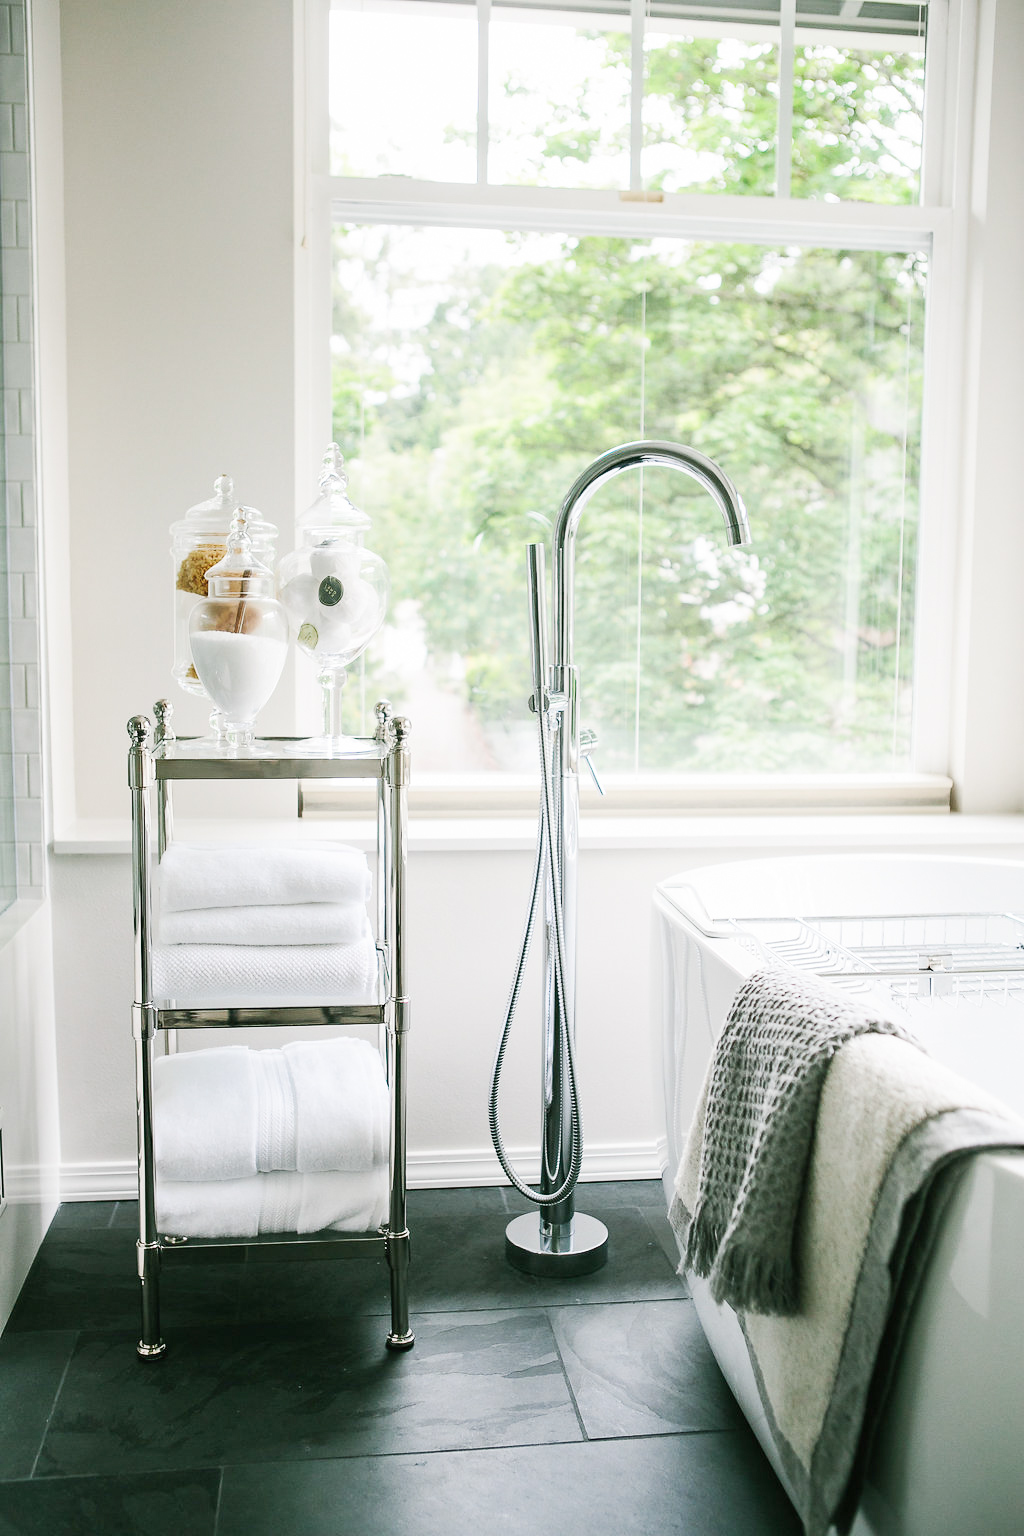 Polished nickel bath cart with white towels and a free standing tub faucet.